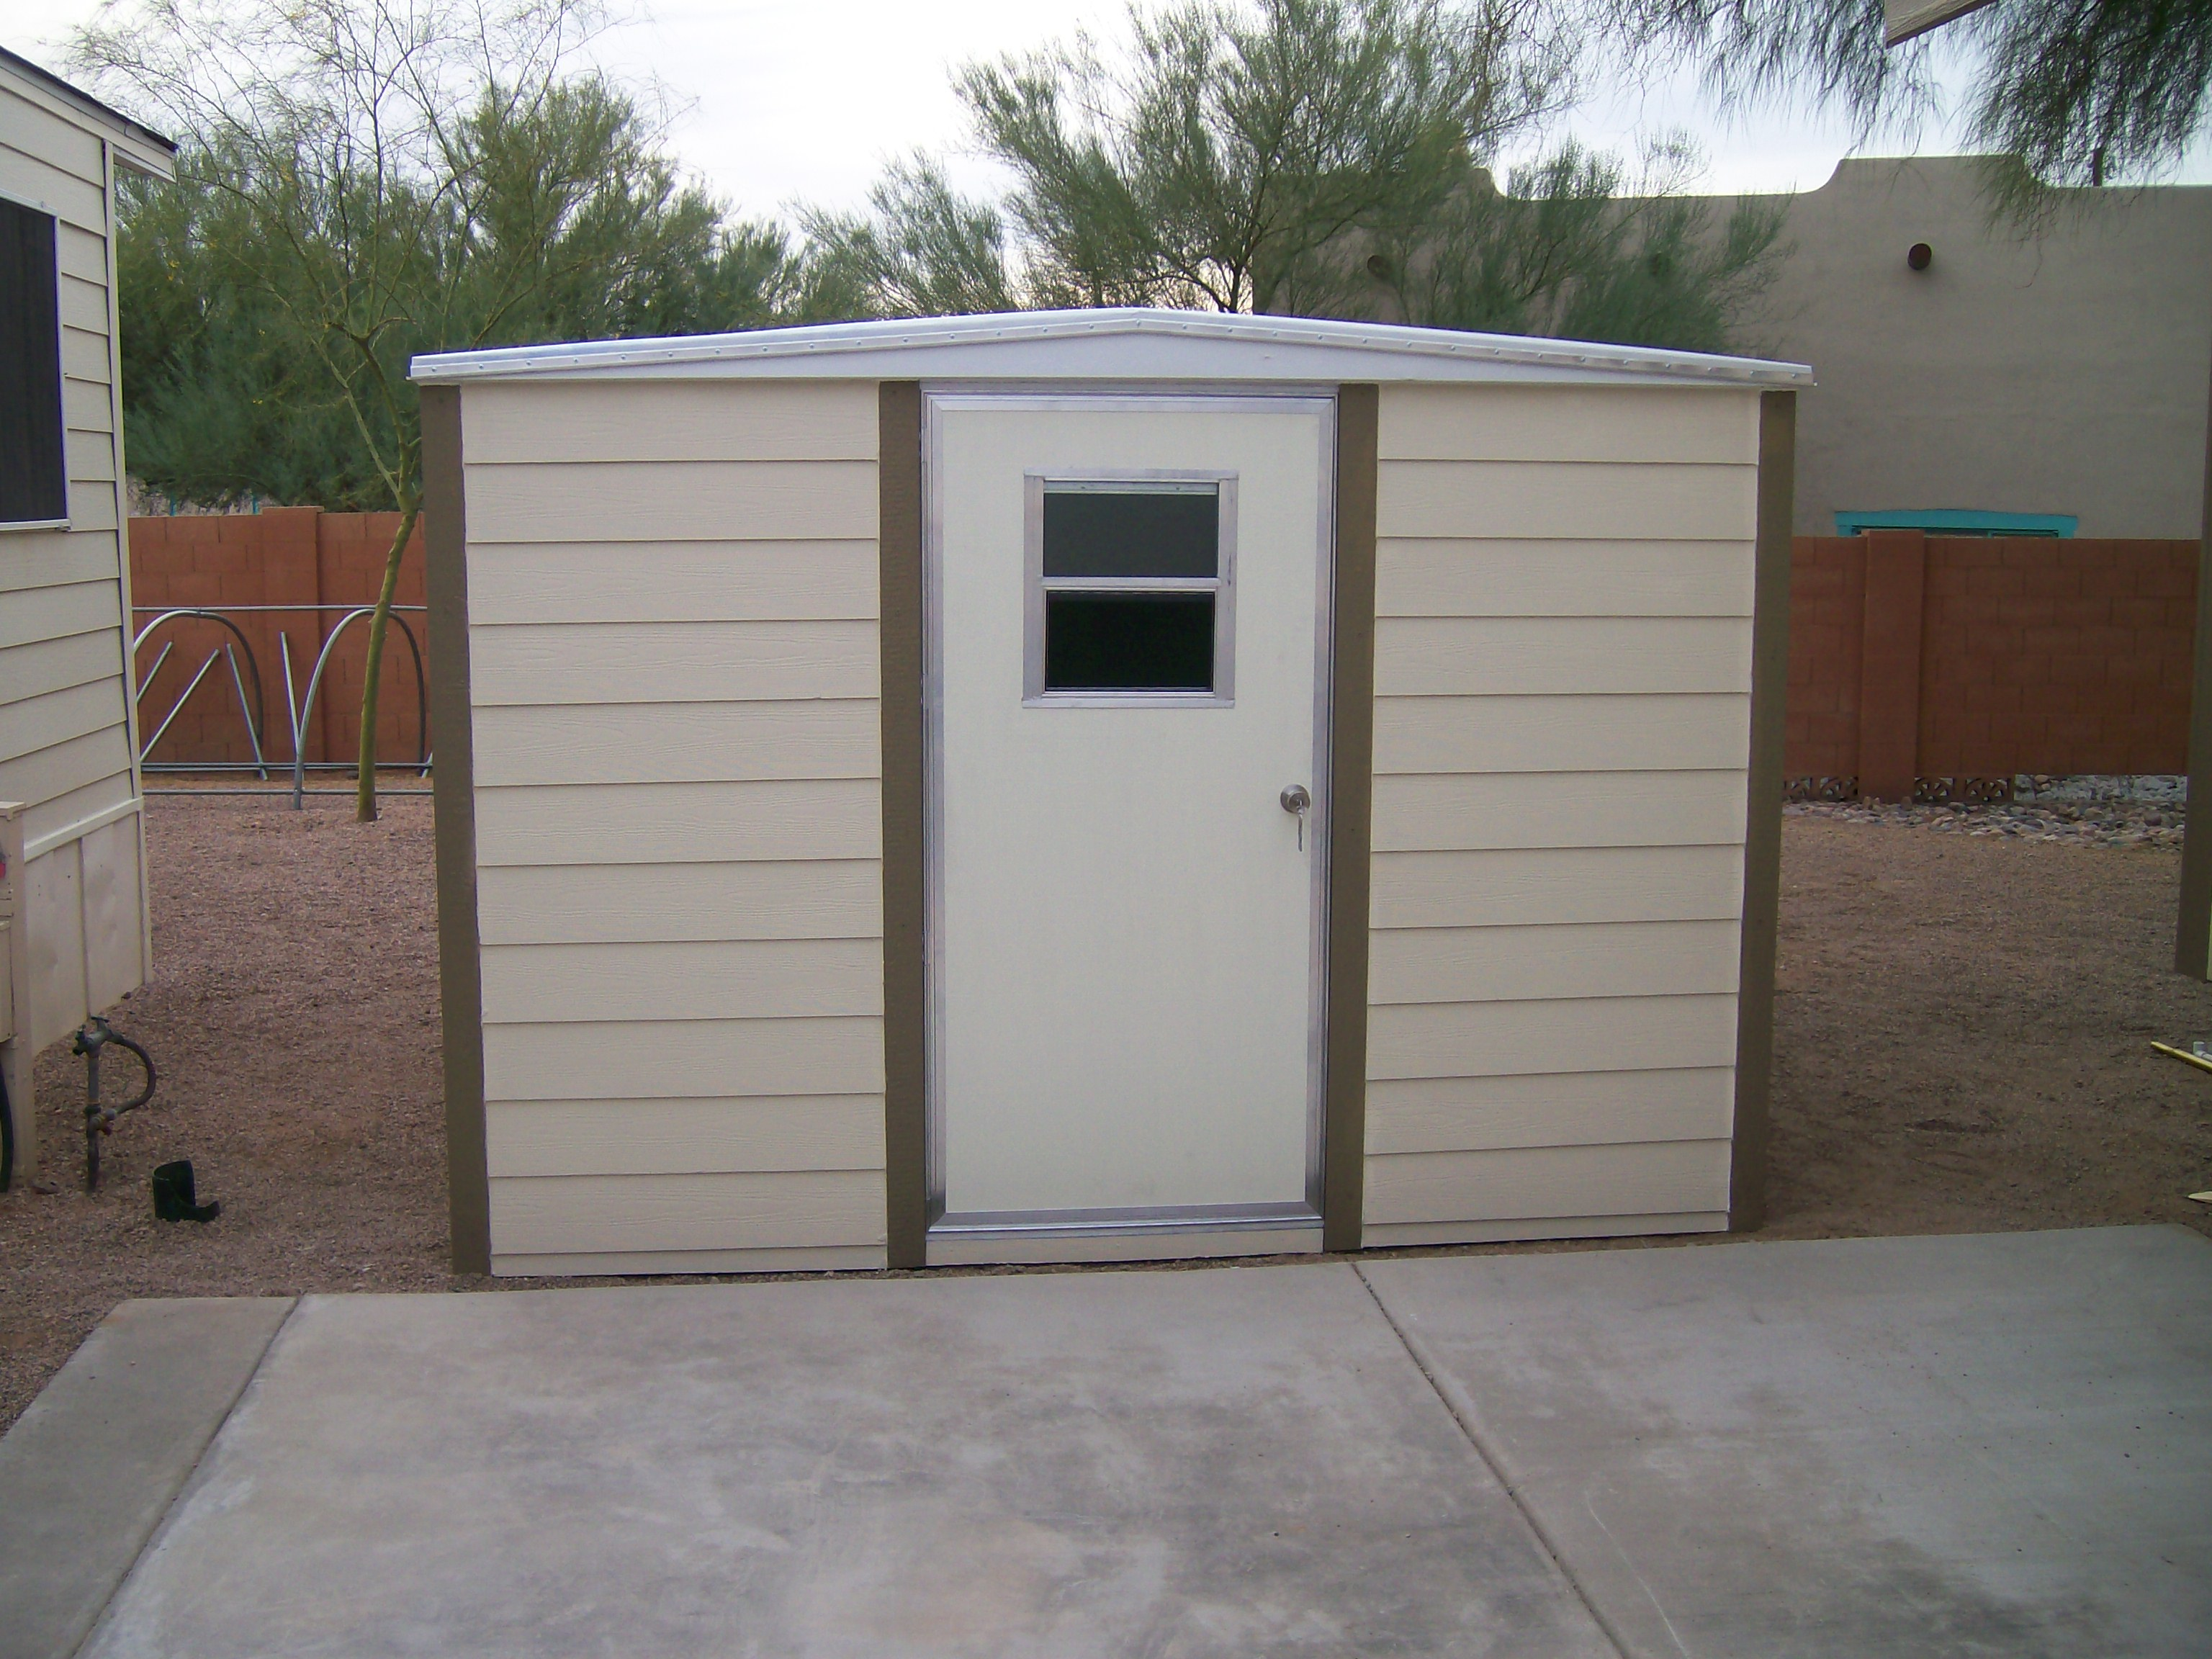 Discount sheds in apache junction az 85120 for Inexpensive sheds